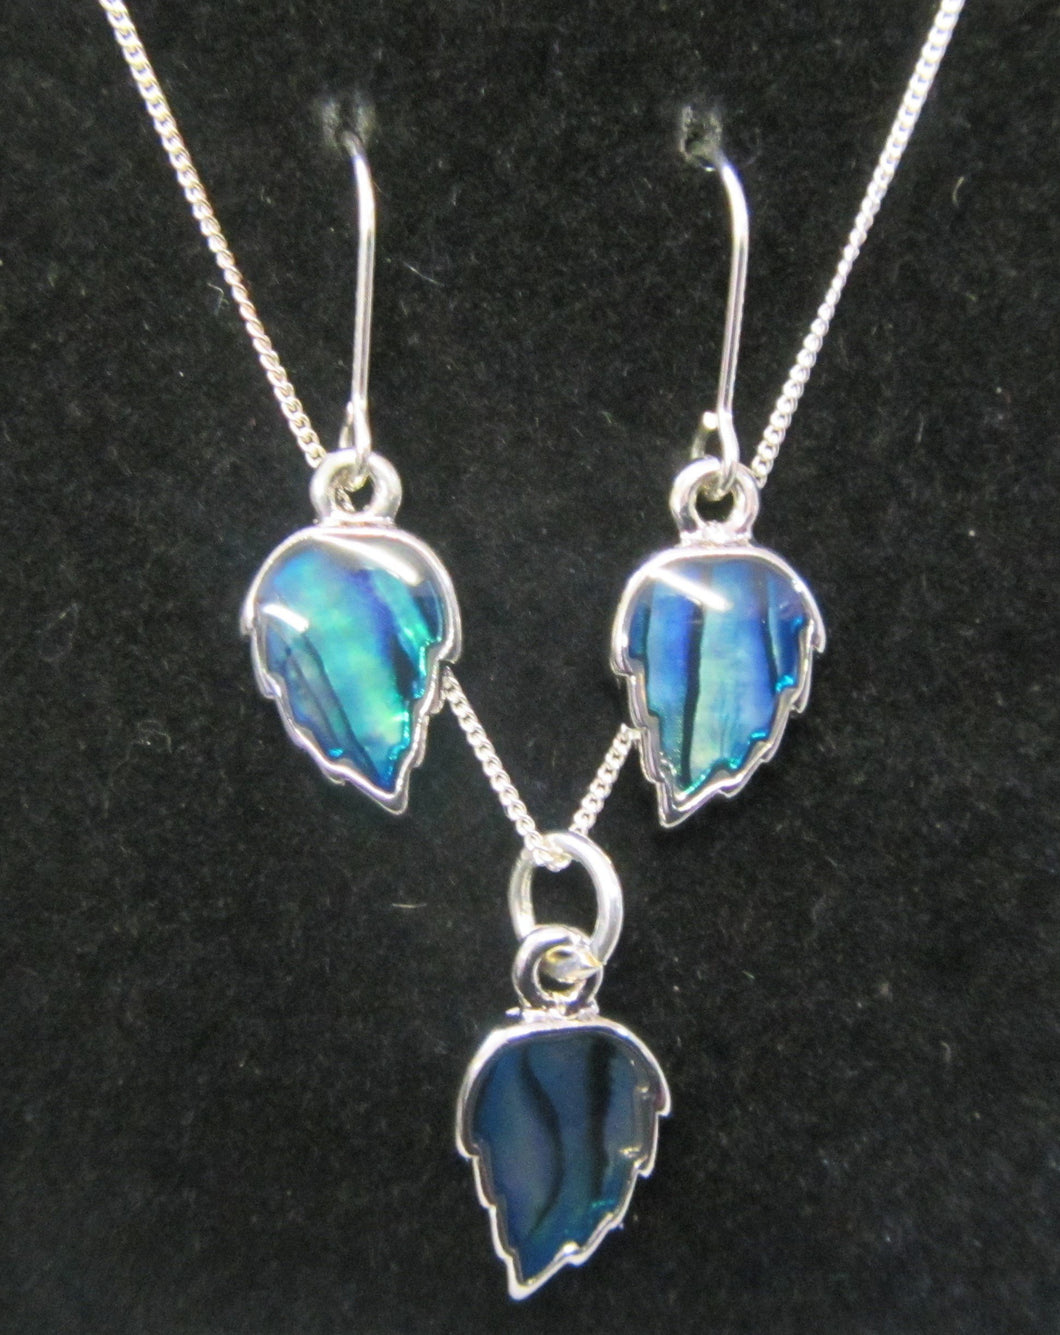 Beautiful handcrafted sterling silver blue abalone leaf jewellery set